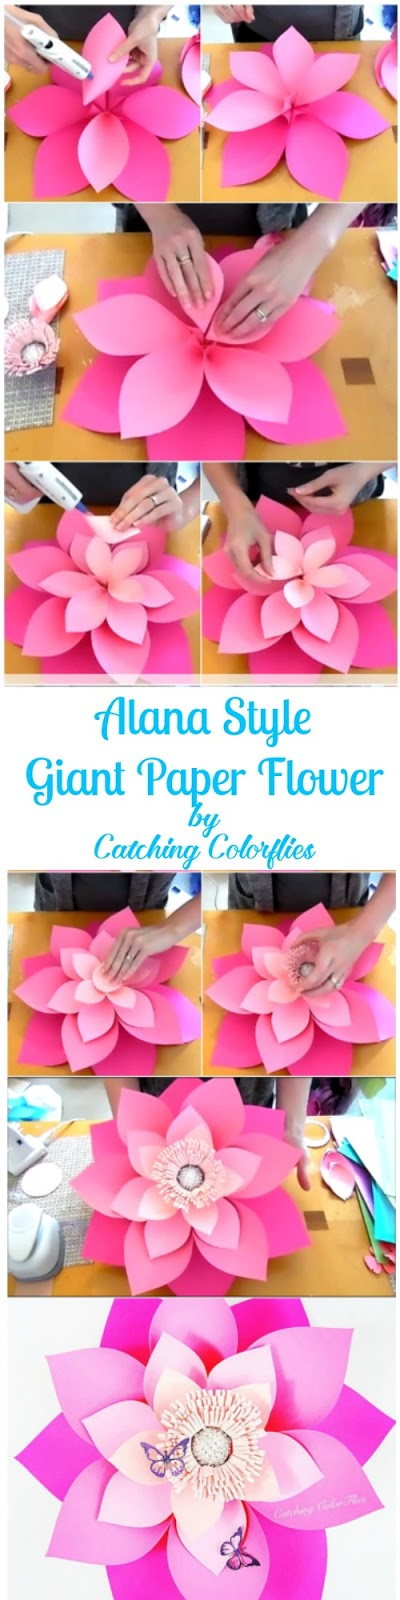 Mamas gone crafty how to make giant hawaiian paper flowers diy alana layered paper flower flower templates diy paper flower tutorials mightylinksfo